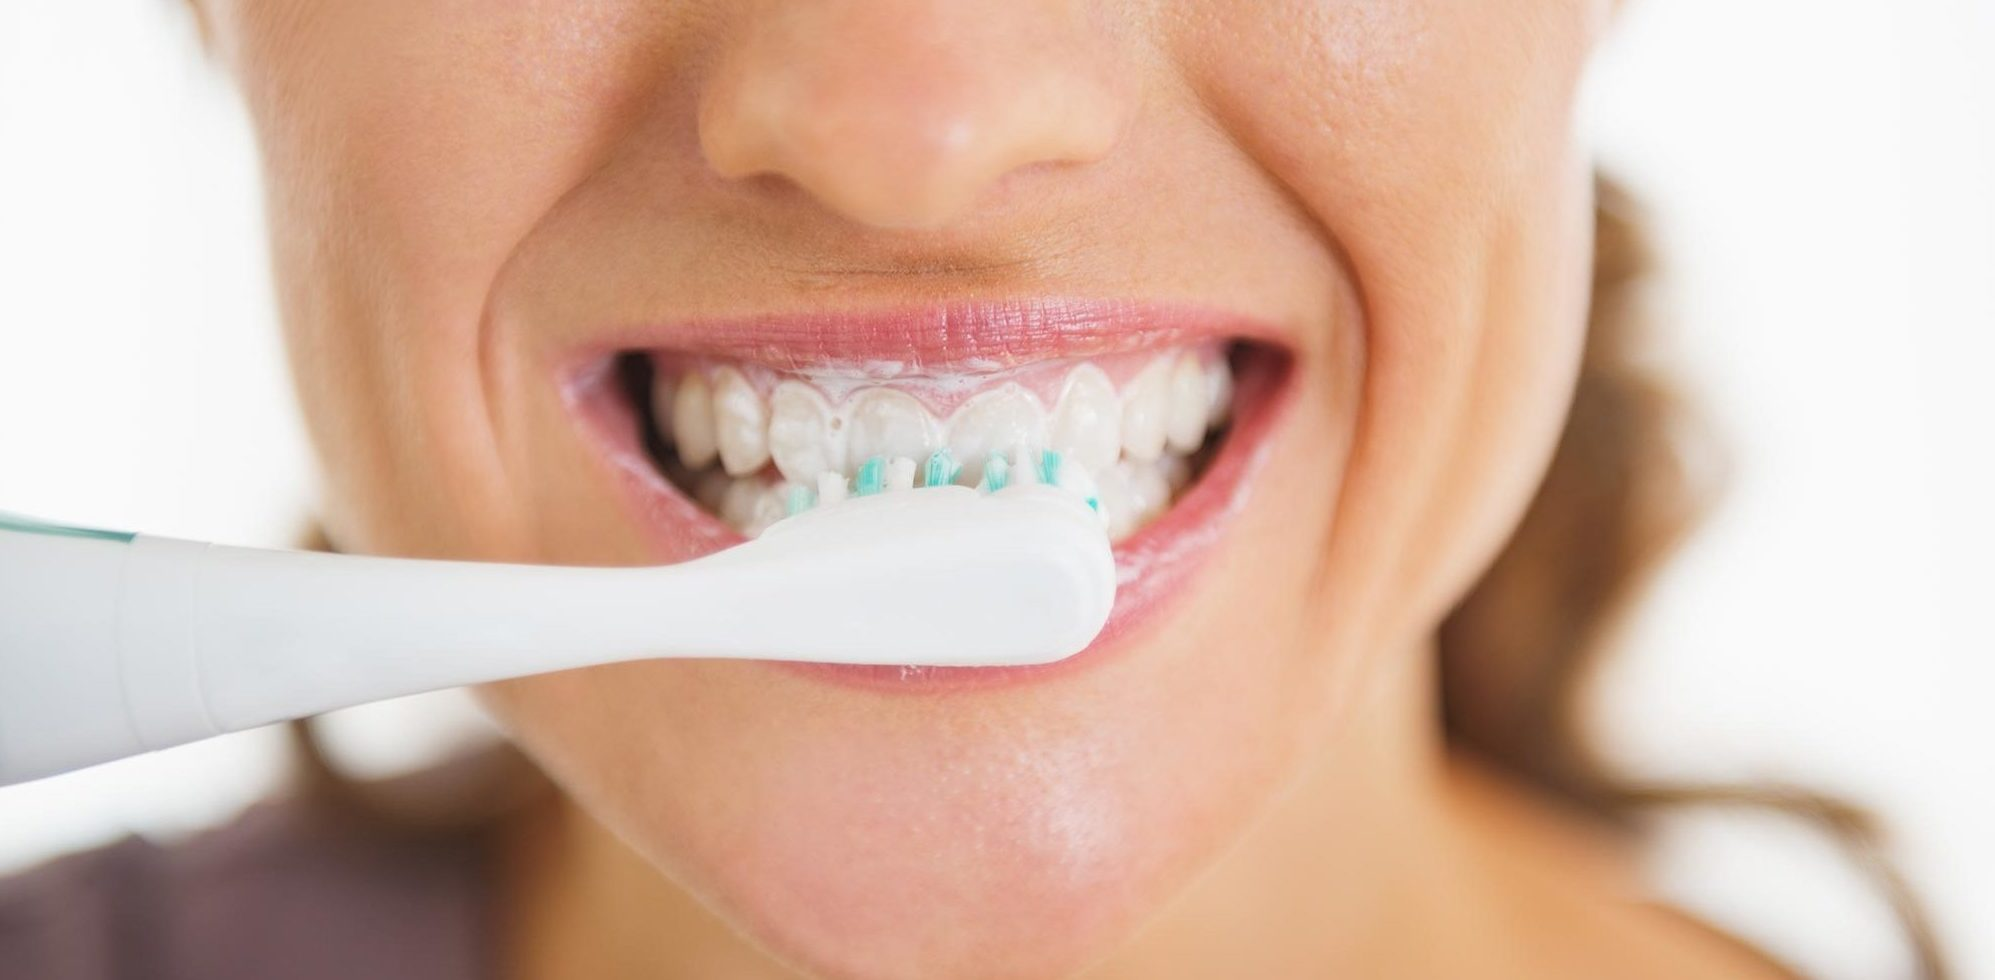 Only 12% of Brits brush their teeth twice a day since the COVID-19 lockdown, it has been revealed